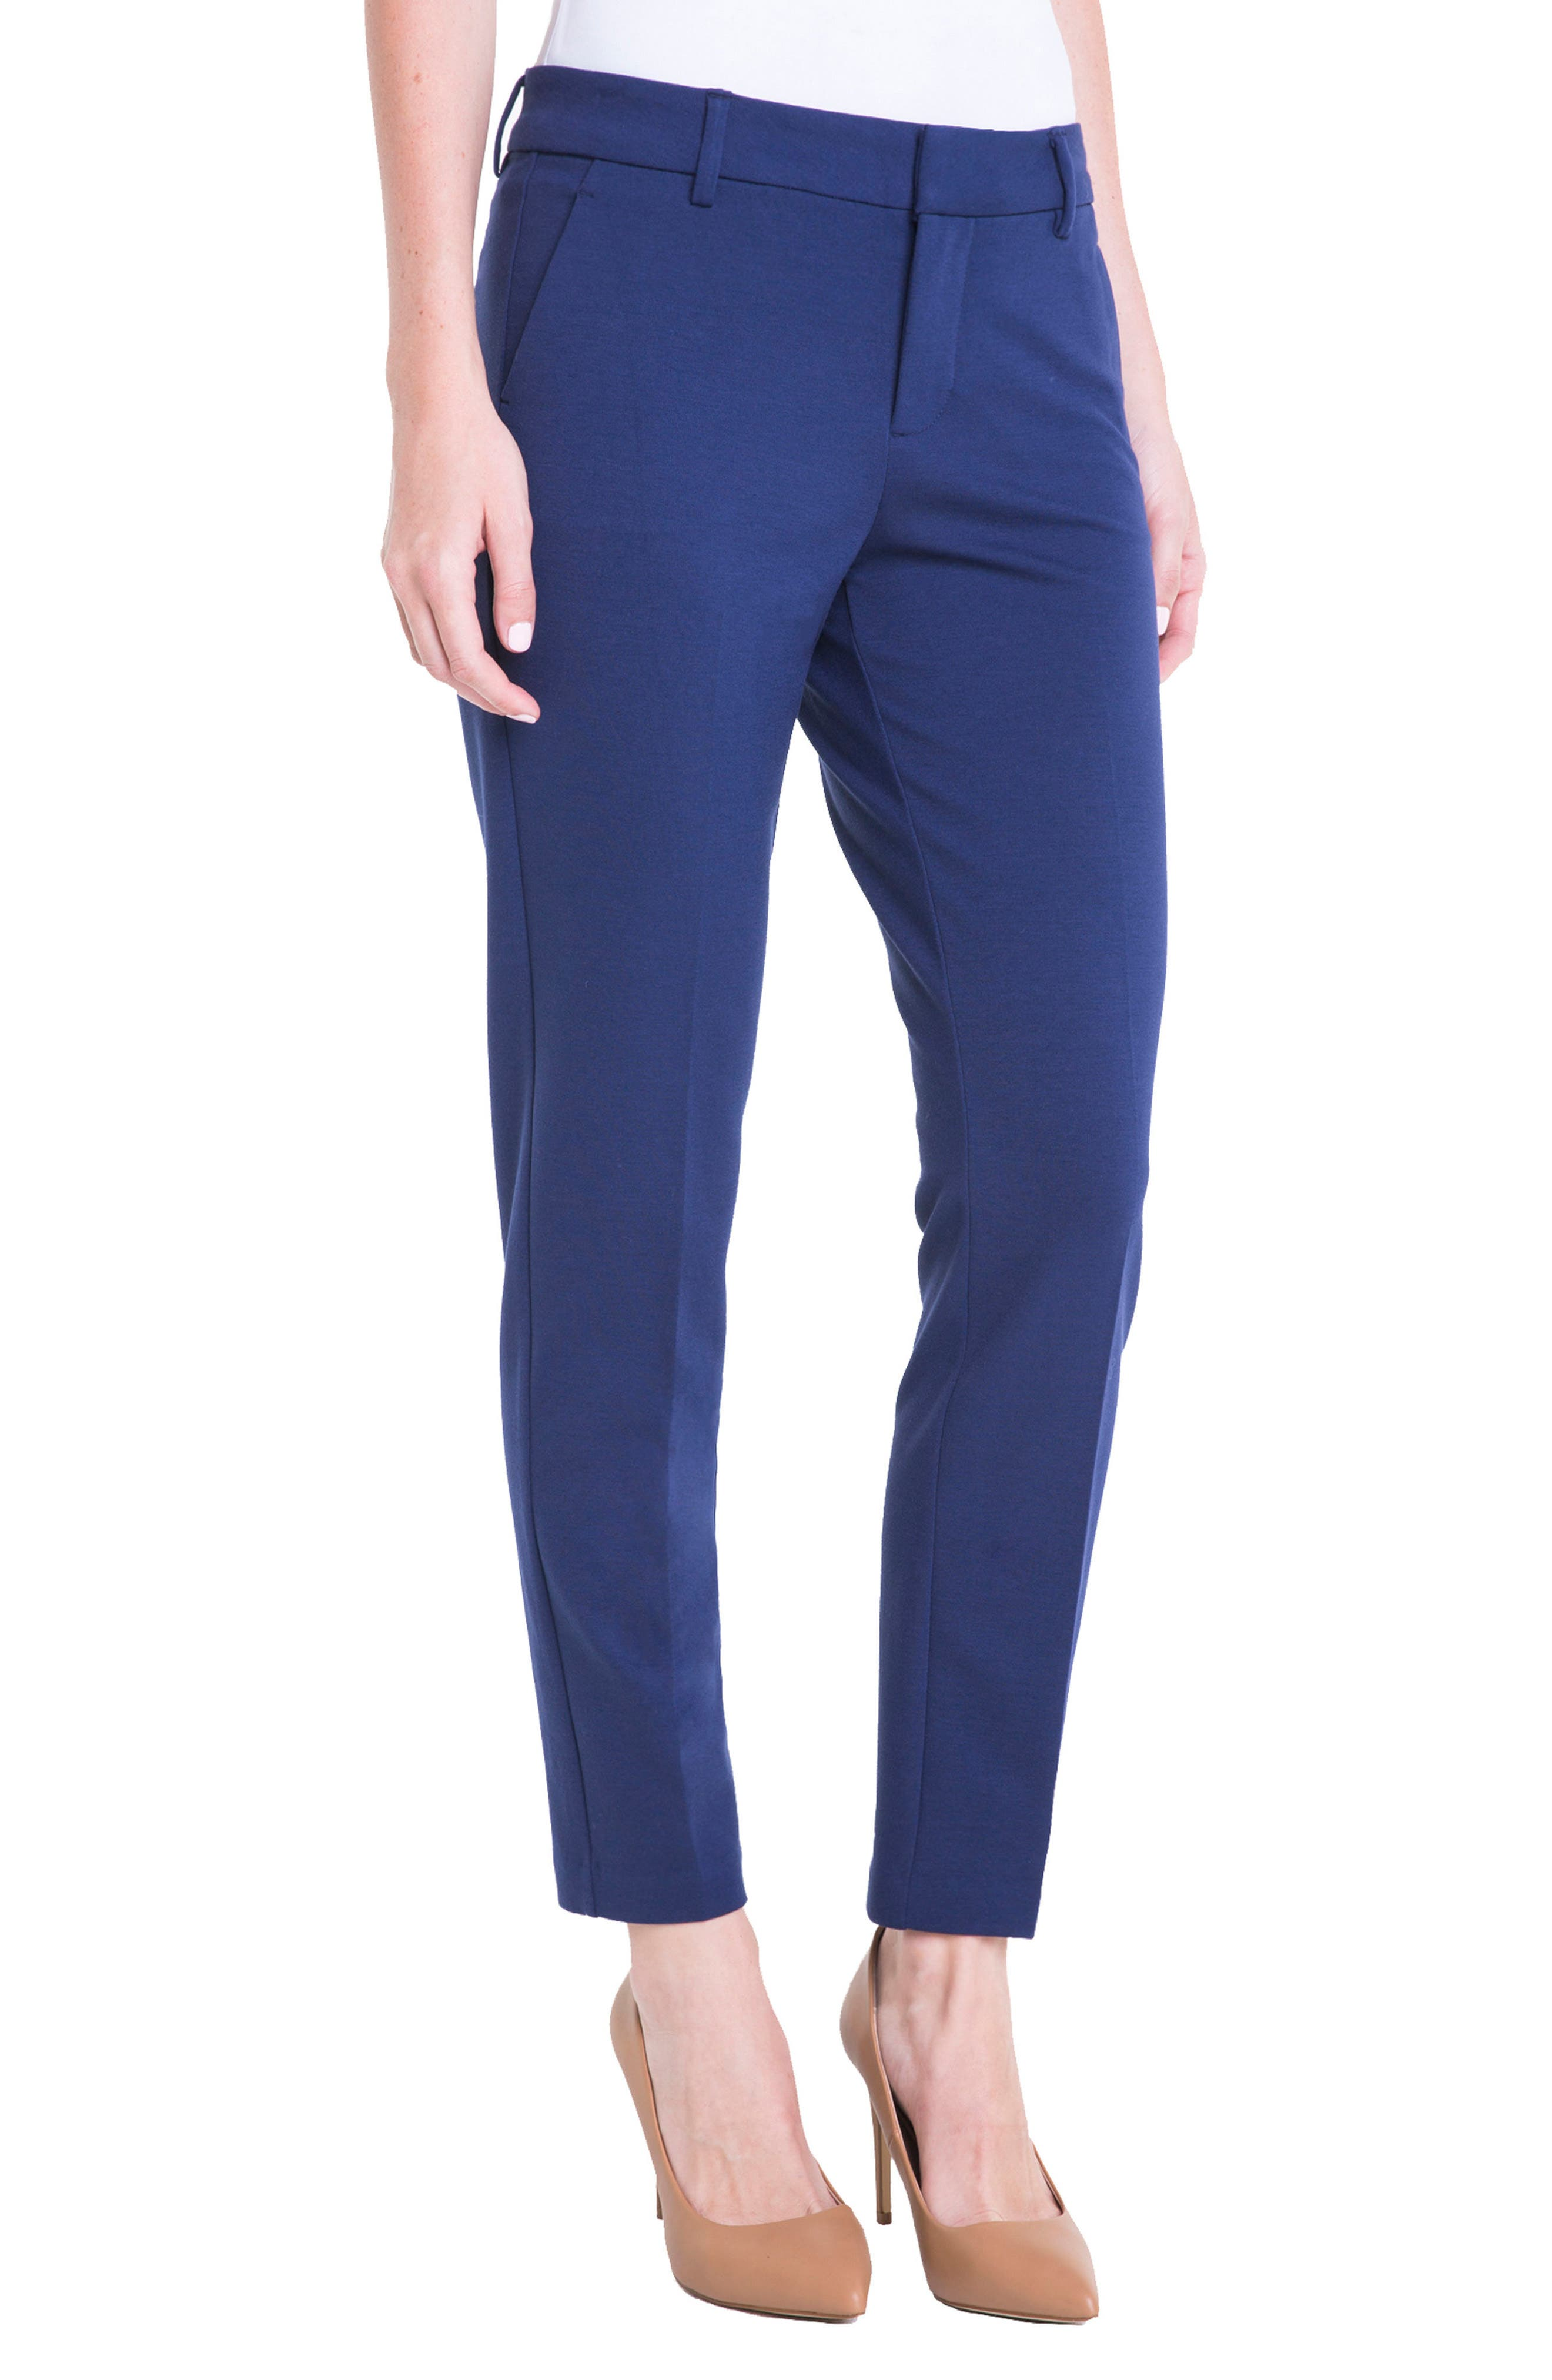 Kelsey Knit Trousers,                             Main thumbnail 1, color,                             MEDIEVAL BLUE